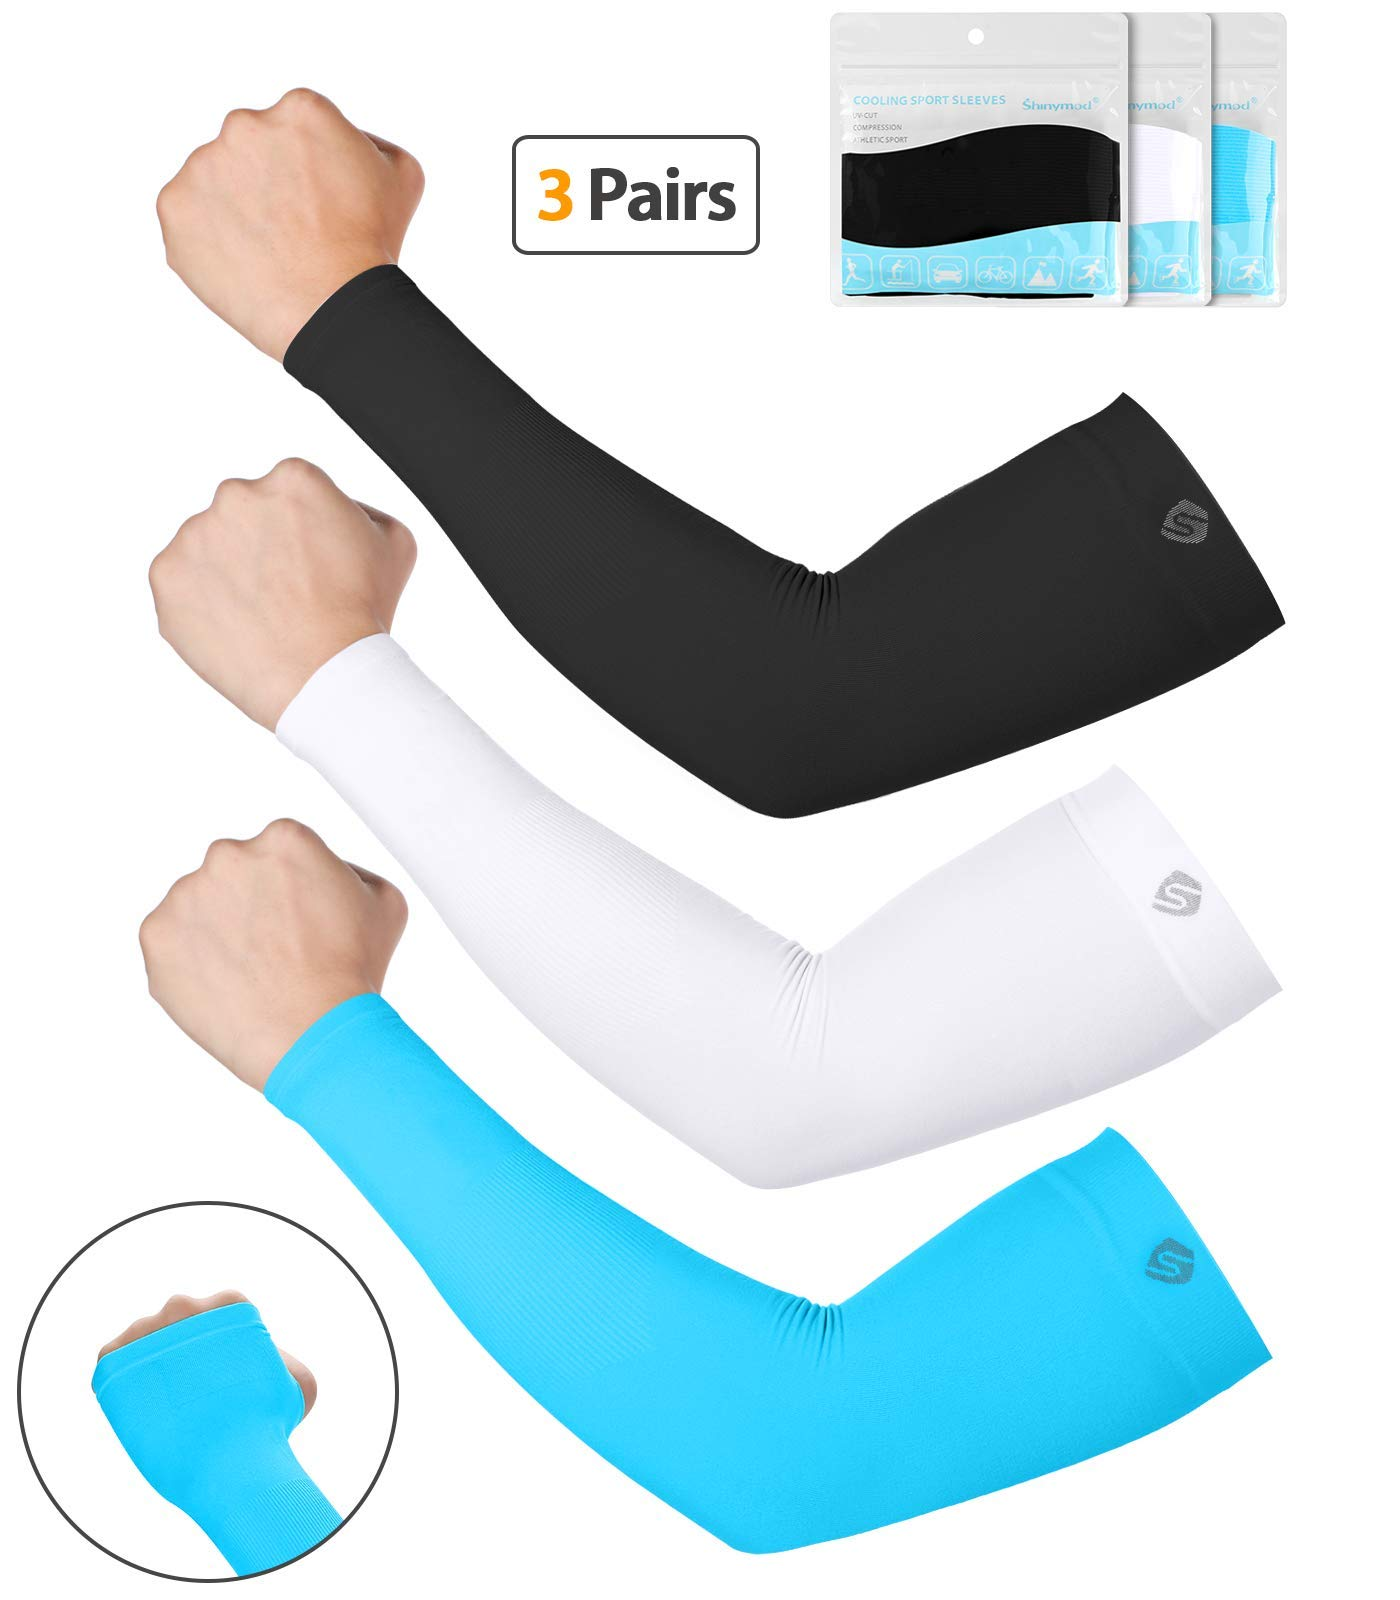 SHINYMOD UV Protection Cooling or Warmer Arm Sleeves for Men Women Kids Sunblock Protective Gloves Running Golf Cycling Driving Long Tattoo Cover Arm Warmer-Black White SkyBlue